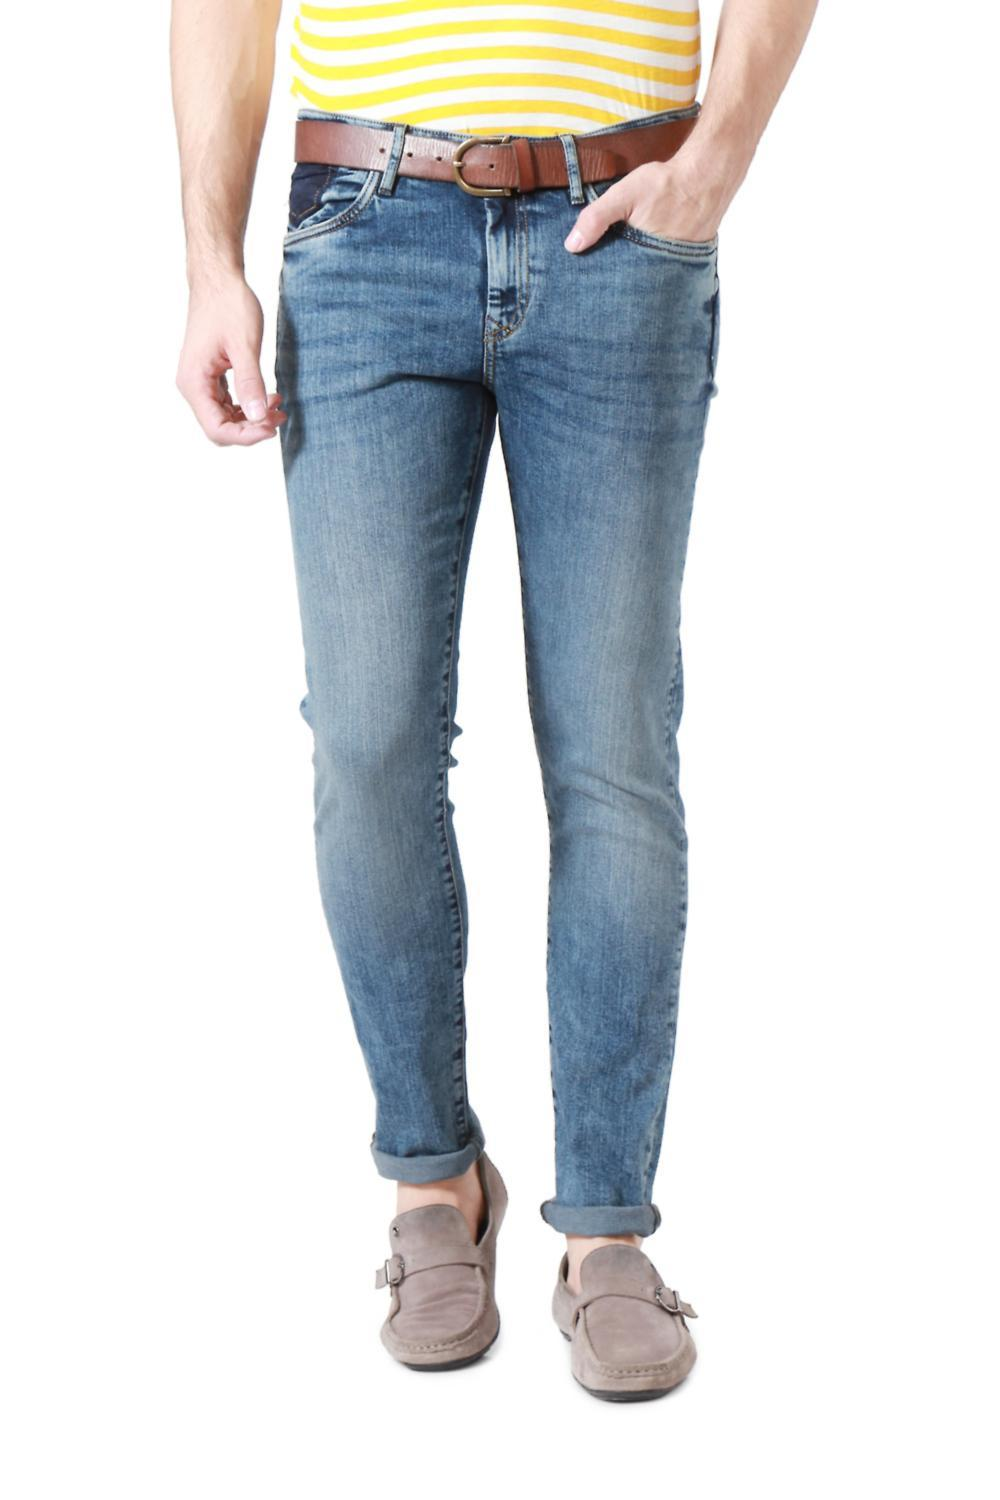 Solly Jeans Co Jeans, Allen Solly Blue Jeans for Men at Planetfashion.in